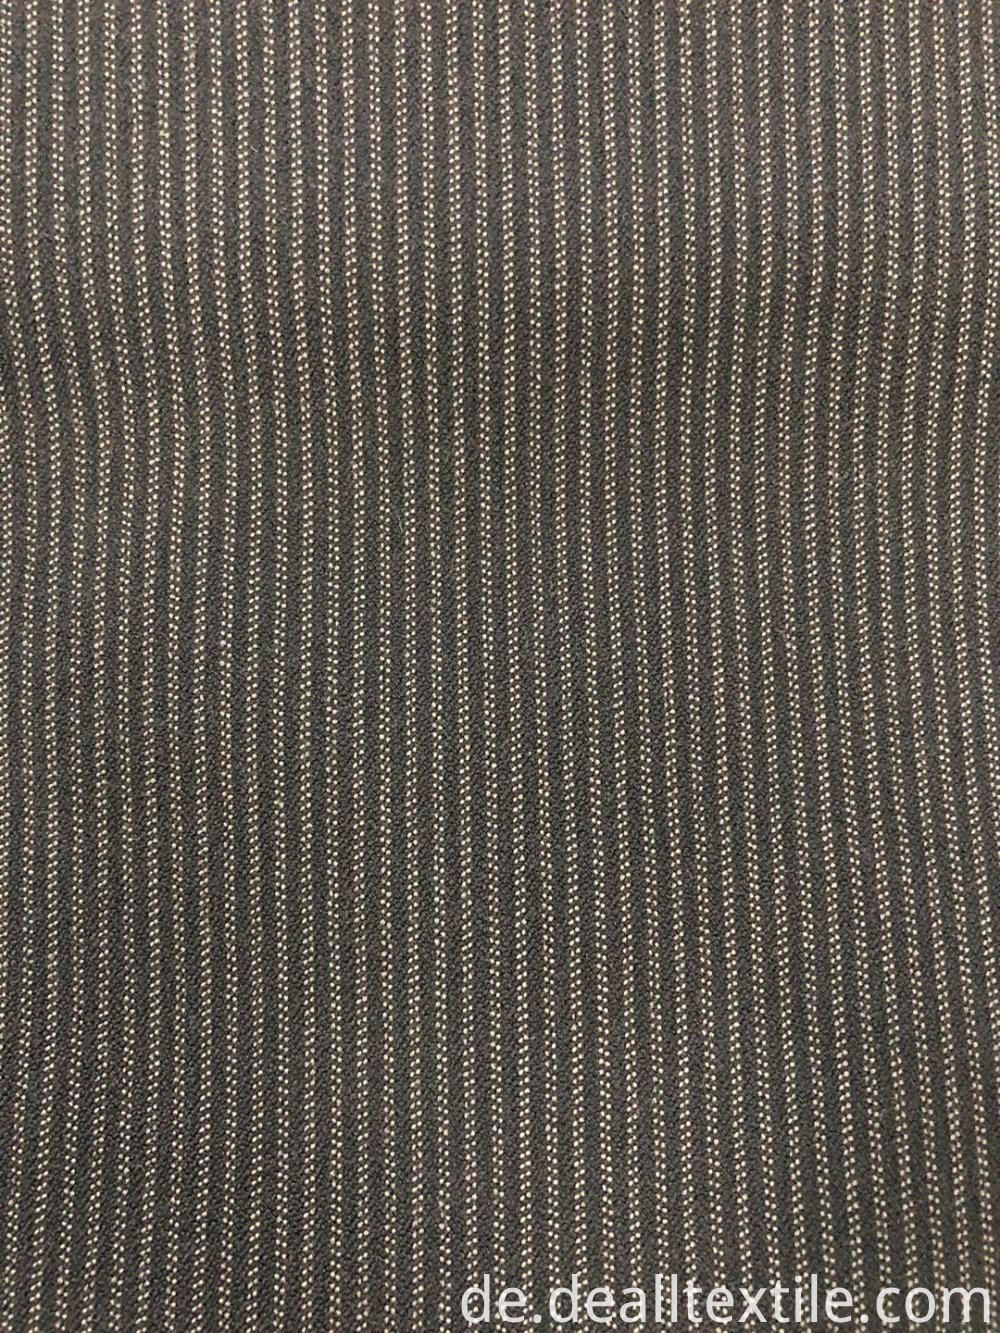 MEN'S POLY RAYON WOOL SUIT FABRIC